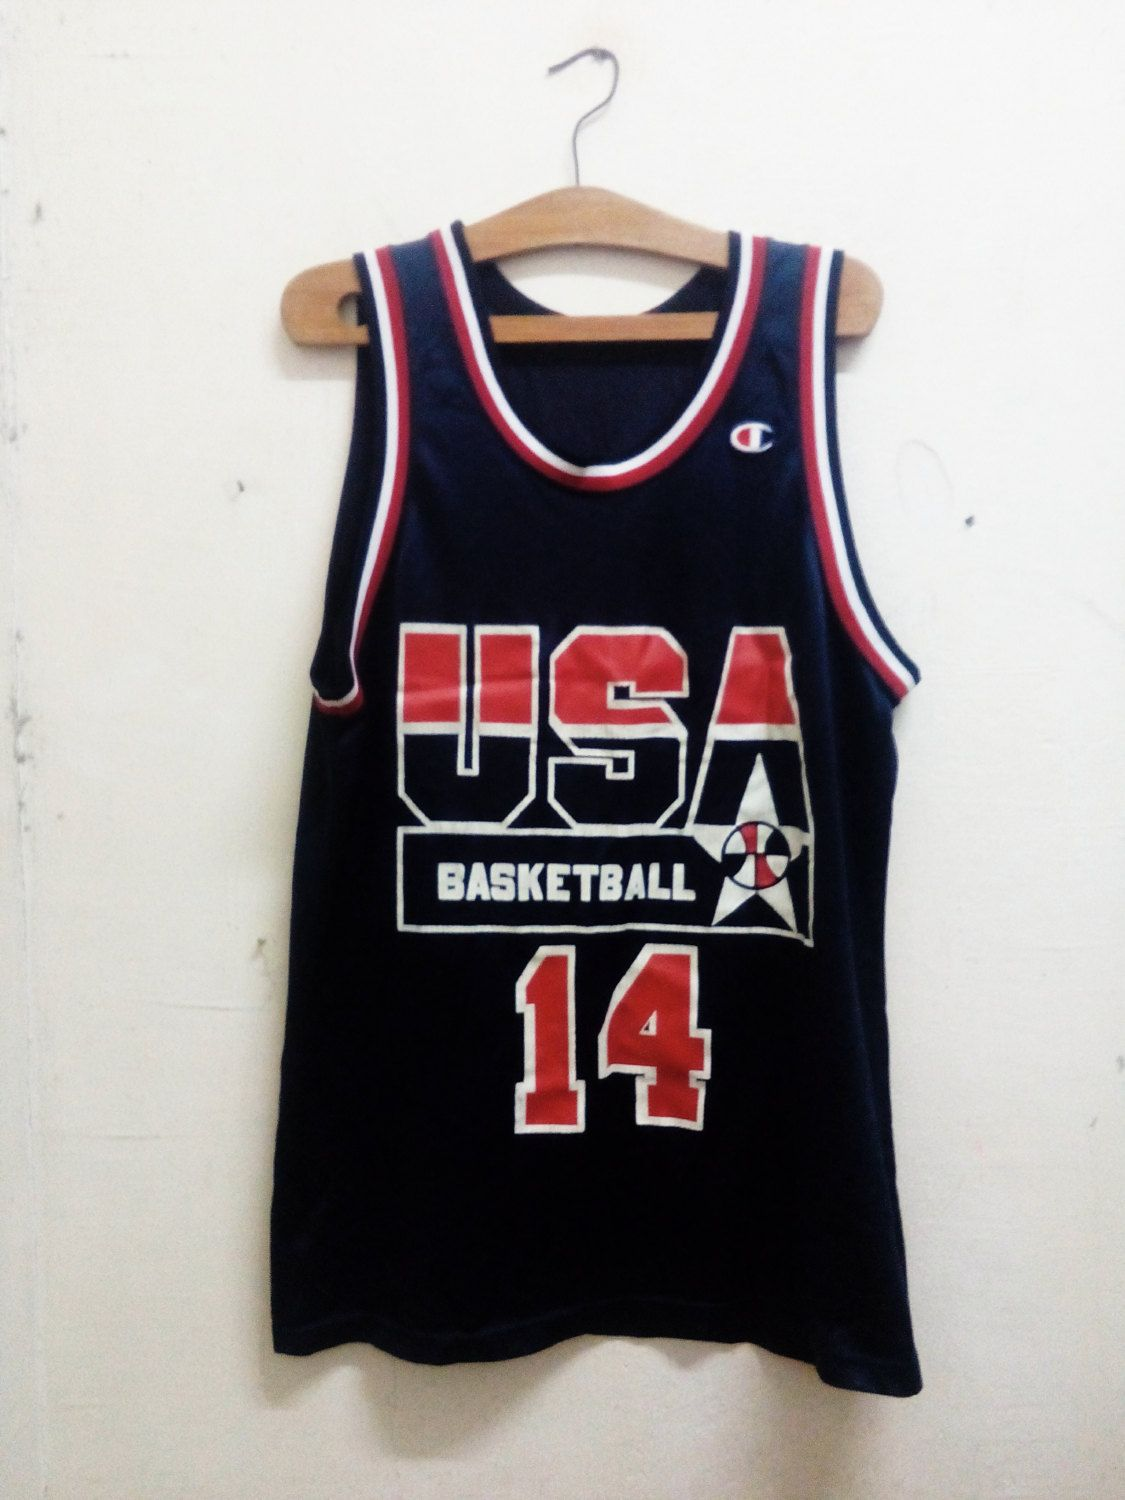 a03307681 Vintage NBA USA Dream Team II  14 Alonzo Mourning National Team Basketball  Jersey Hip hop Style Big logo Designs Unisex Sz42 by Psychovault on Etsy